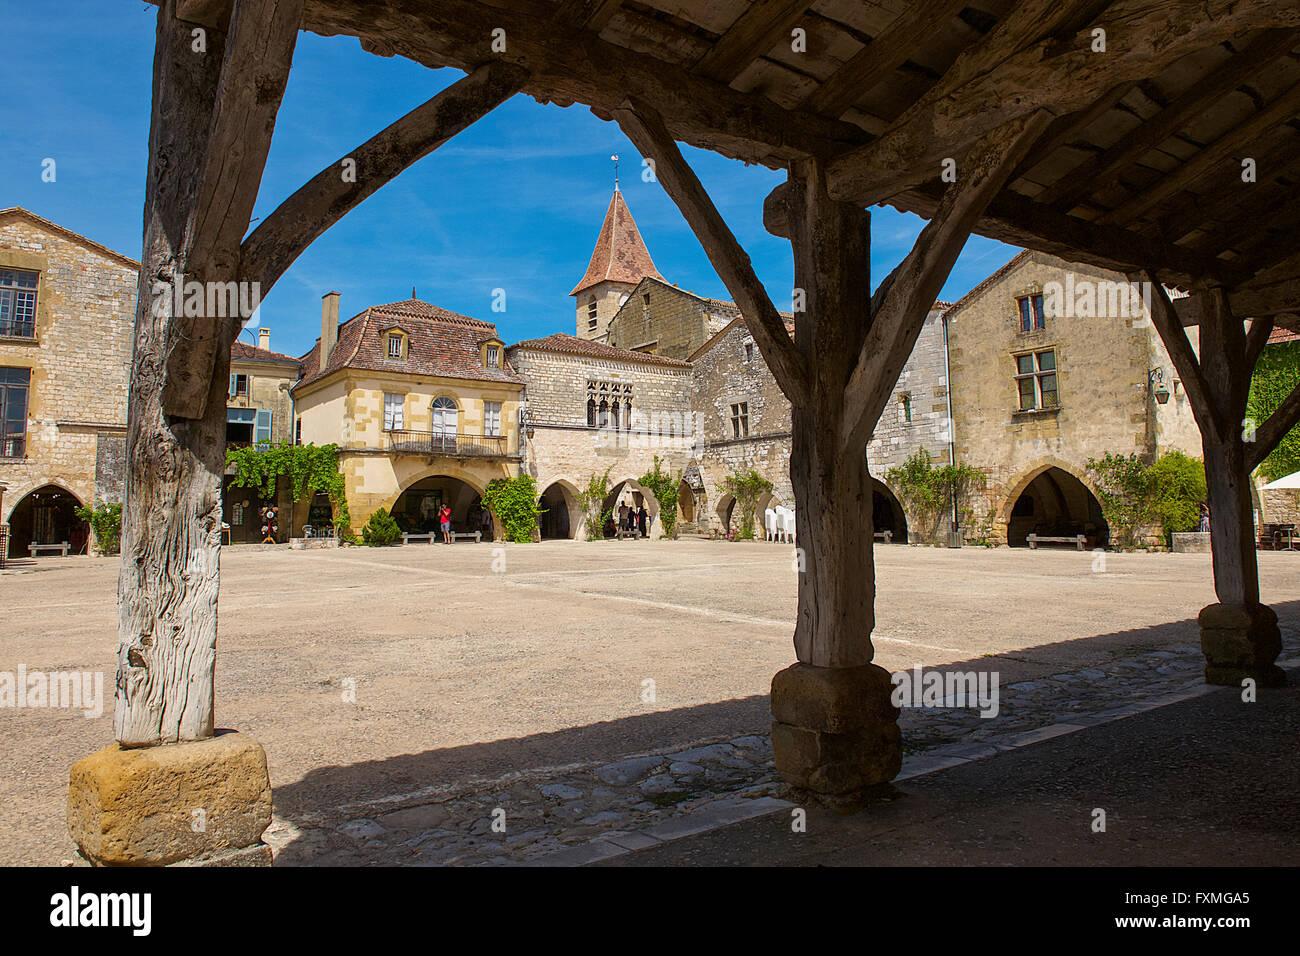 The Medieval Arcaded Central Square, Monpazier, France - Stock Image